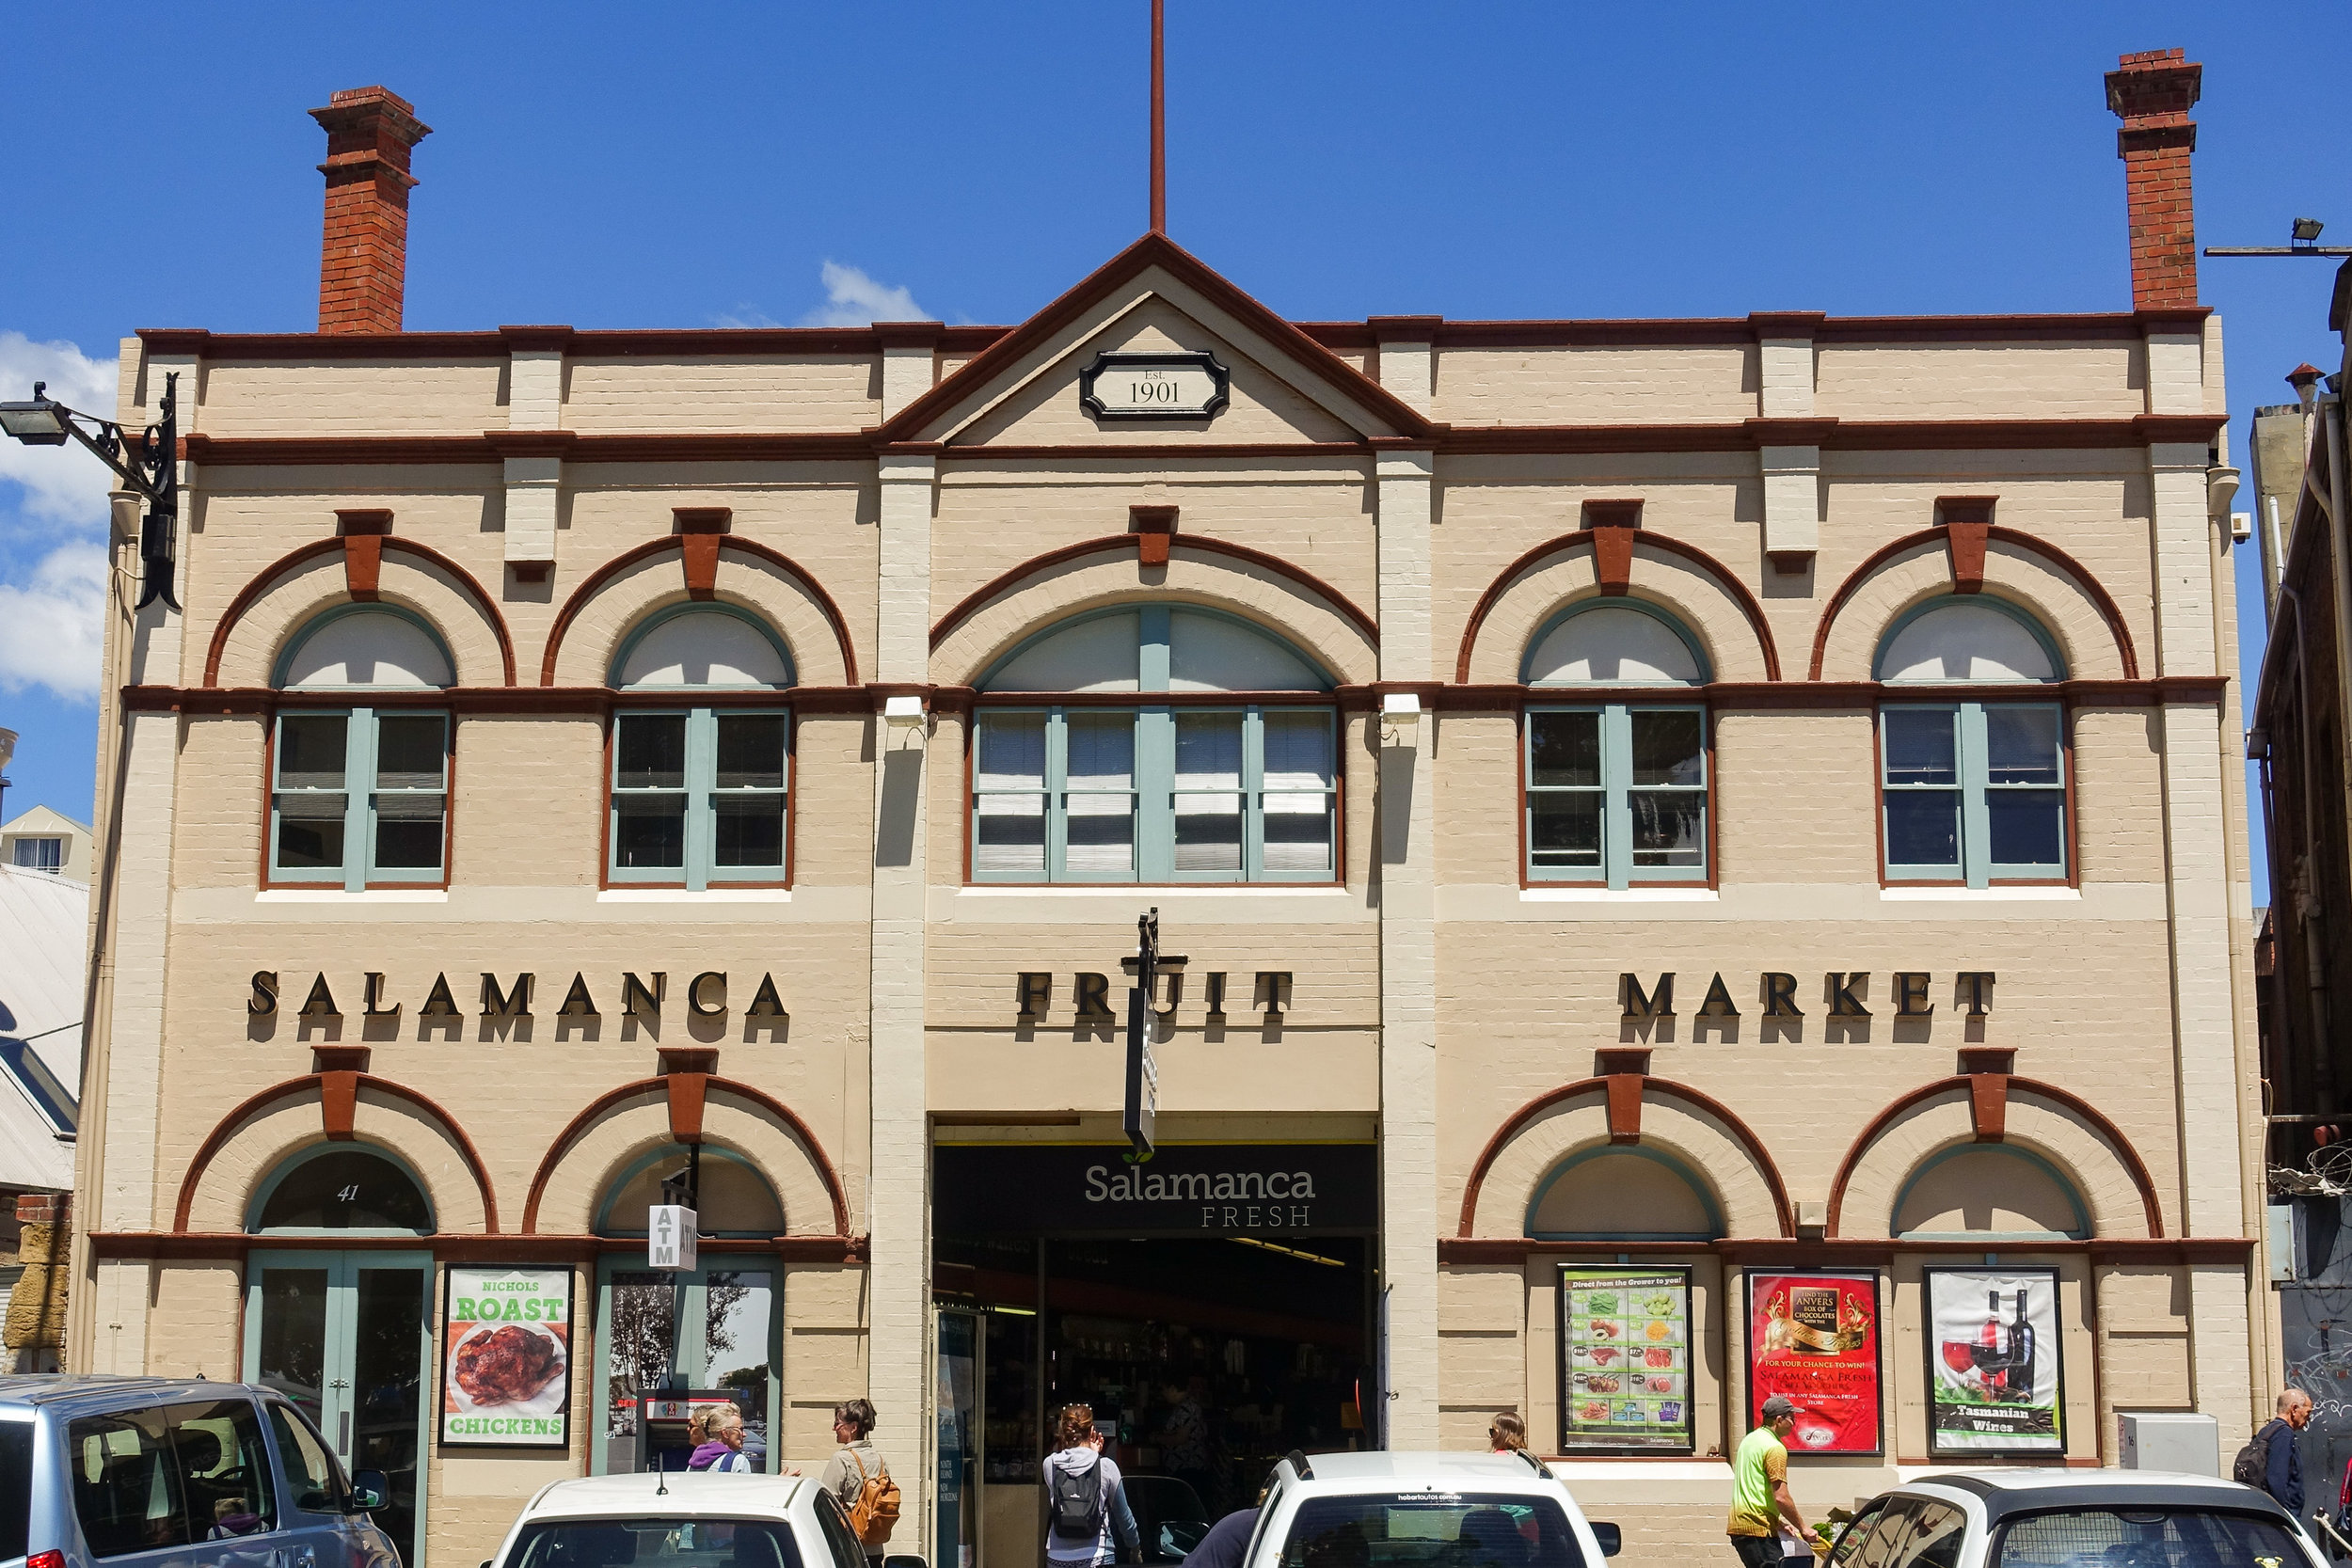 5.)Hobart - No stop here is complete without a trip to the Salamanca Market on Saturdays. The acclaimed MONA museum is closed on Tuesdays, so time your trip to Hobart accordingly to fit in both.